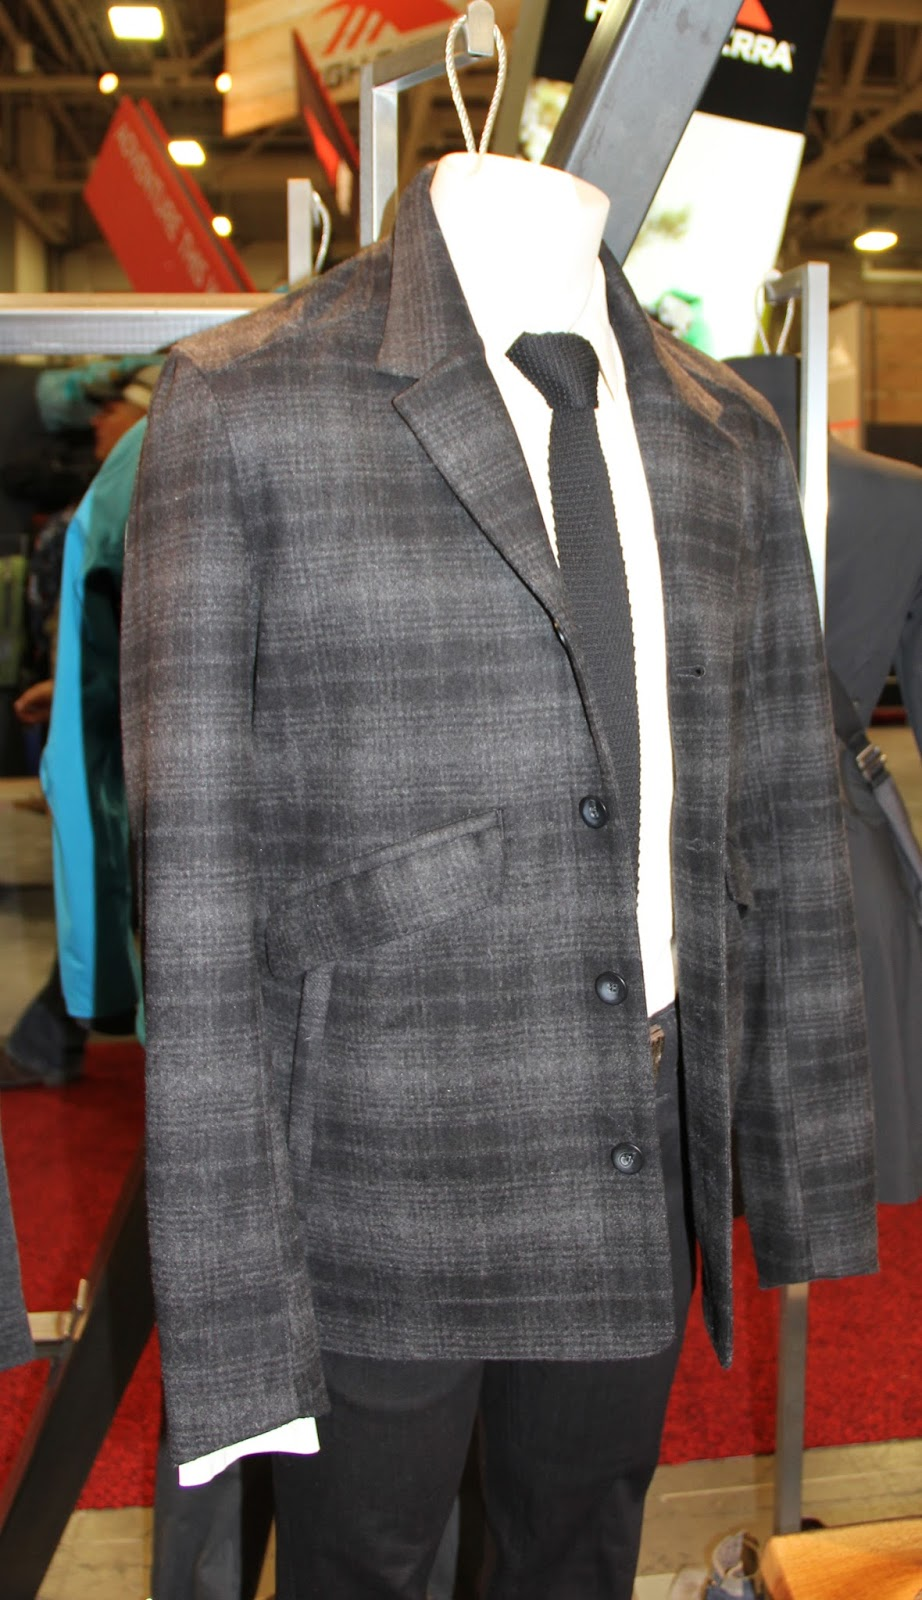 c631faeb7e9 ... blend finished with a weather tough DWR treatment, 2 tone plaid  pattern-clean blazer silhouette---multiple pockets…hand warmer and front  flap/interior…